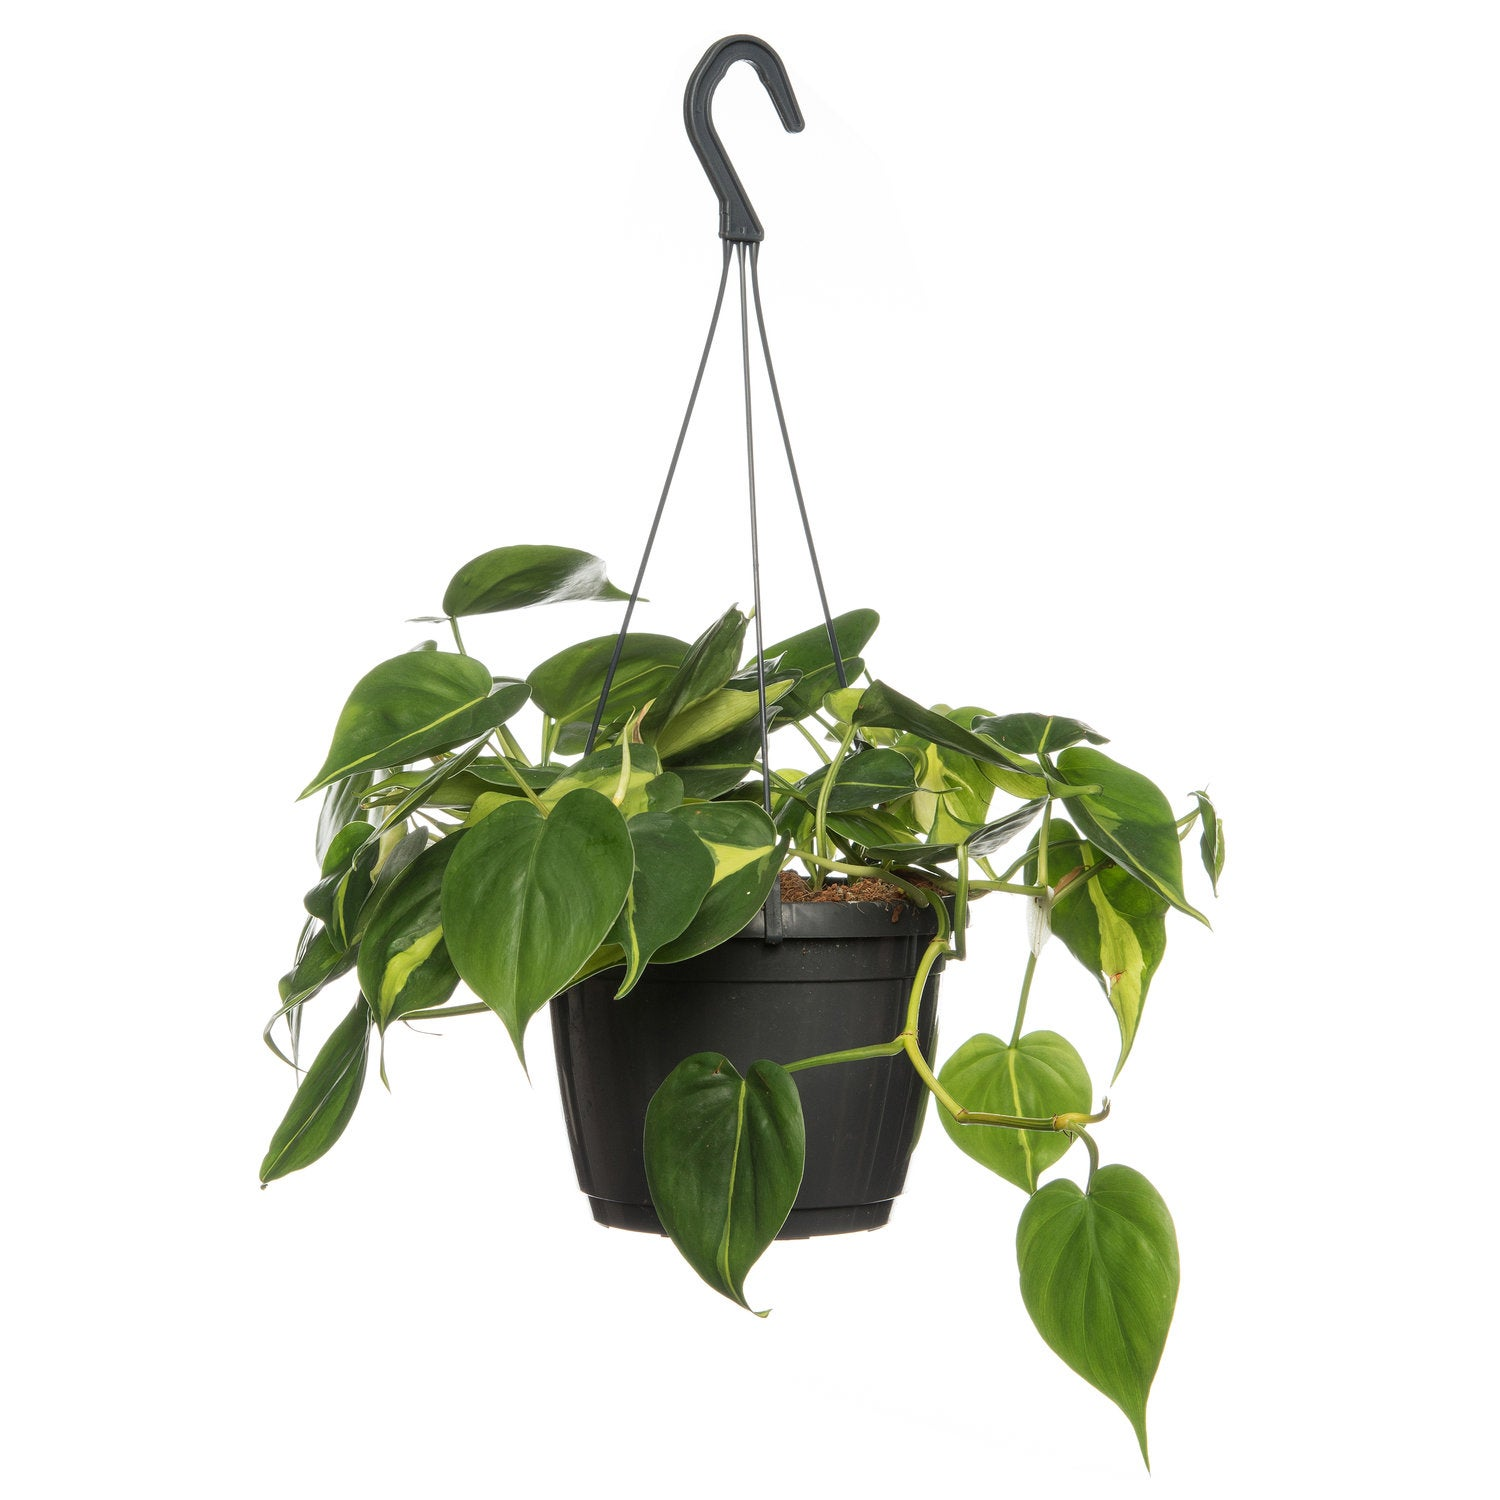 Philodendron (Philodendron scandens 'Brasil') D 18 H 30 cm